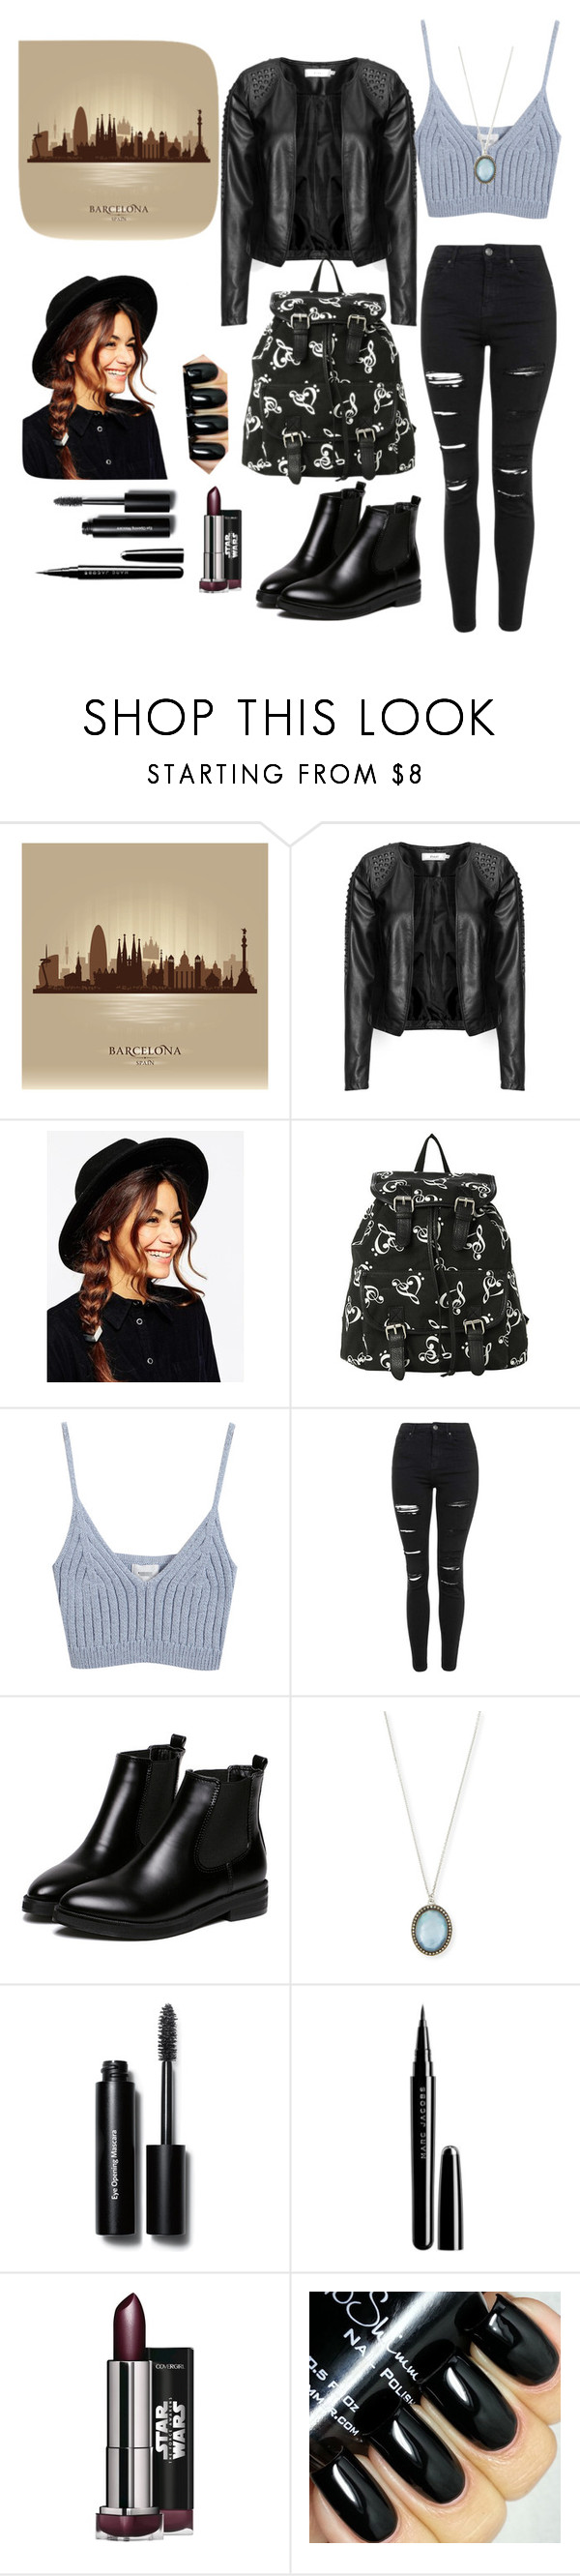 """Untitled #82"" by bertuki21 ❤ liked on Polyvore featuring Zizzi, ASOS, Chicnova Fashion, Topshop, WithChic, Armenta, Bobbi Brown Cosmetics and Marc Jacobs"